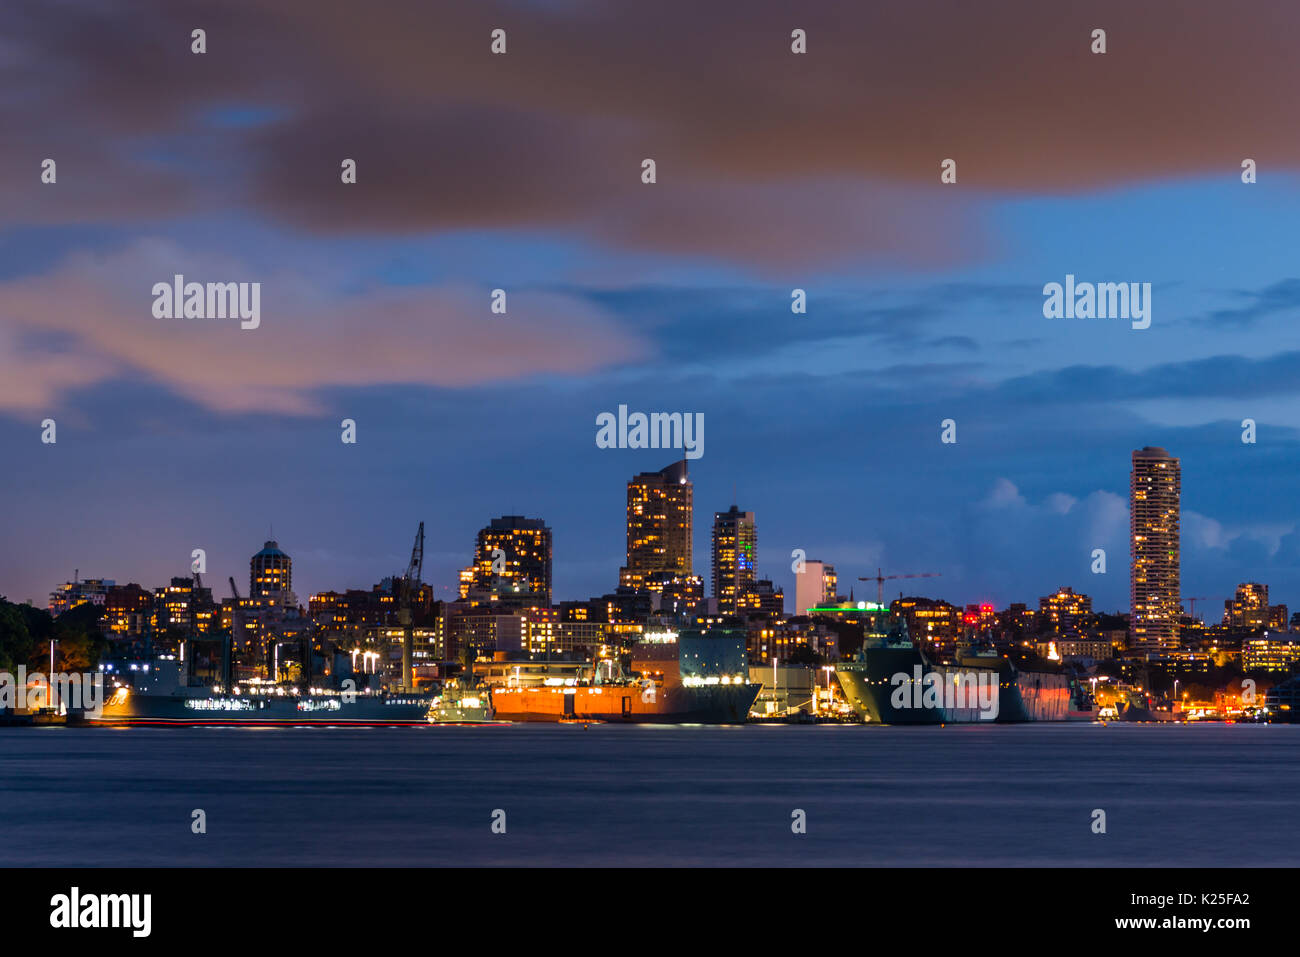 Garden Island Naval base and Potts Point skyline at dusk, seen from Cremorne point. Sydney Harbour, New South Wales, Australia. - Stock Image